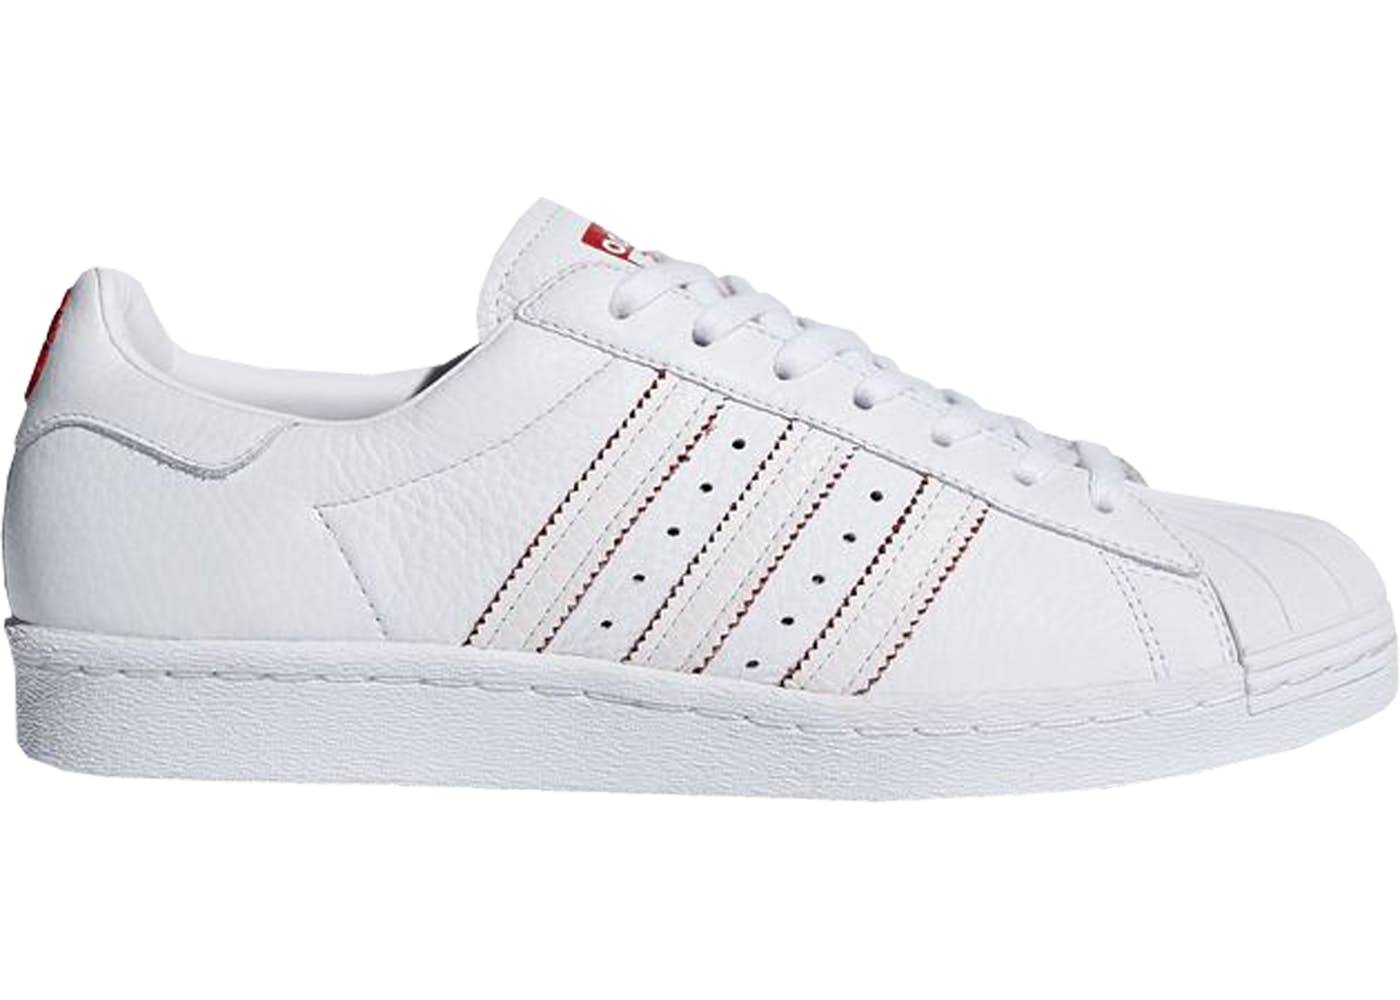 Cheap Adidas Superstar Up Tenis Cheap Adidas en Mercado Libre México